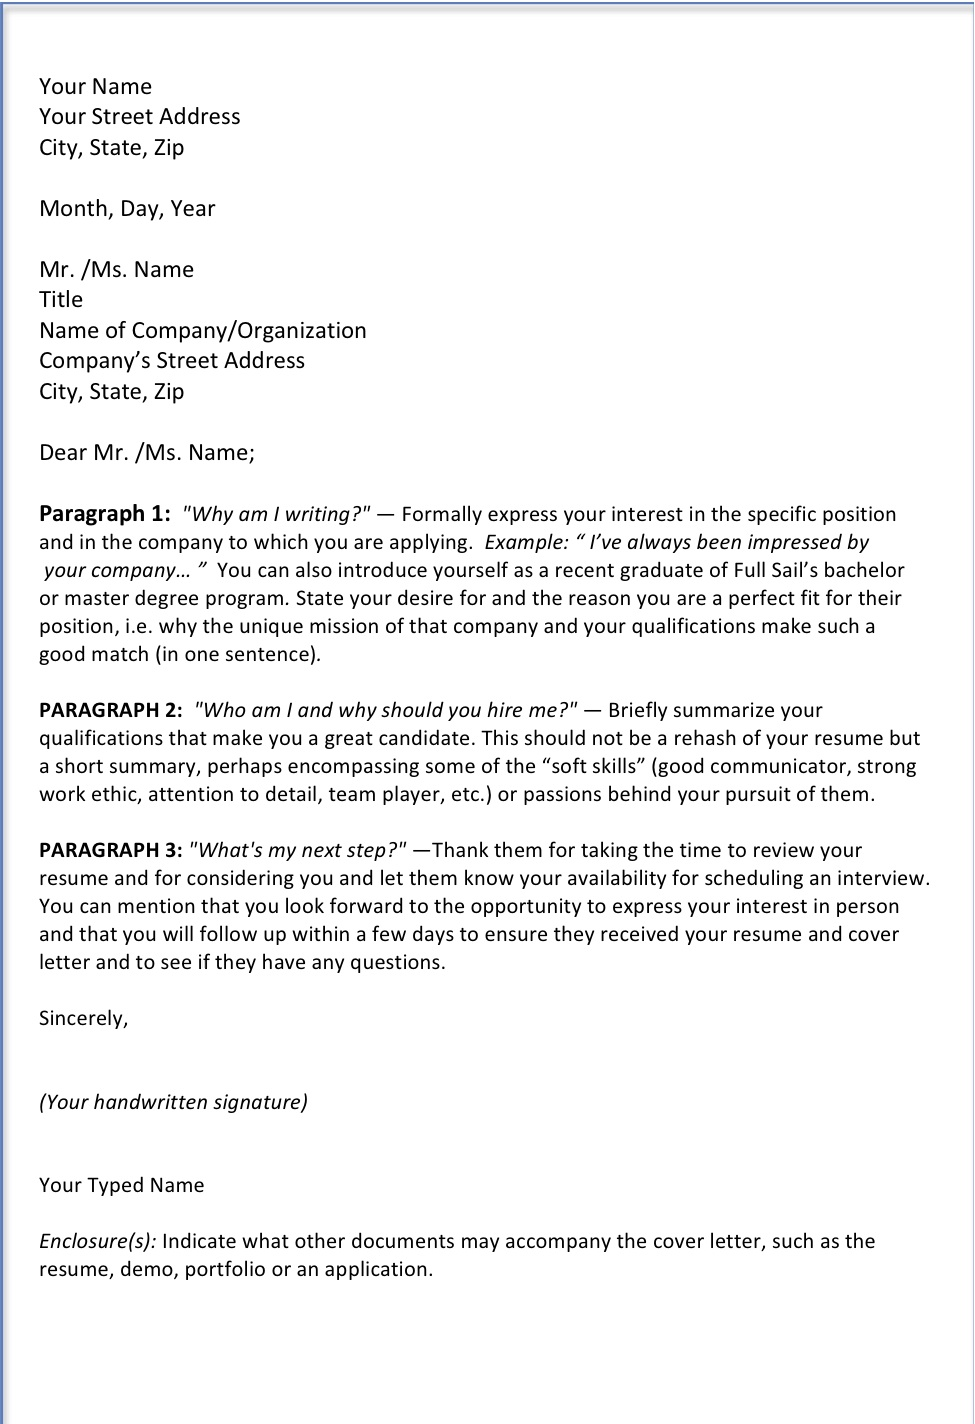 Cover Letter Tips  Resume Architects